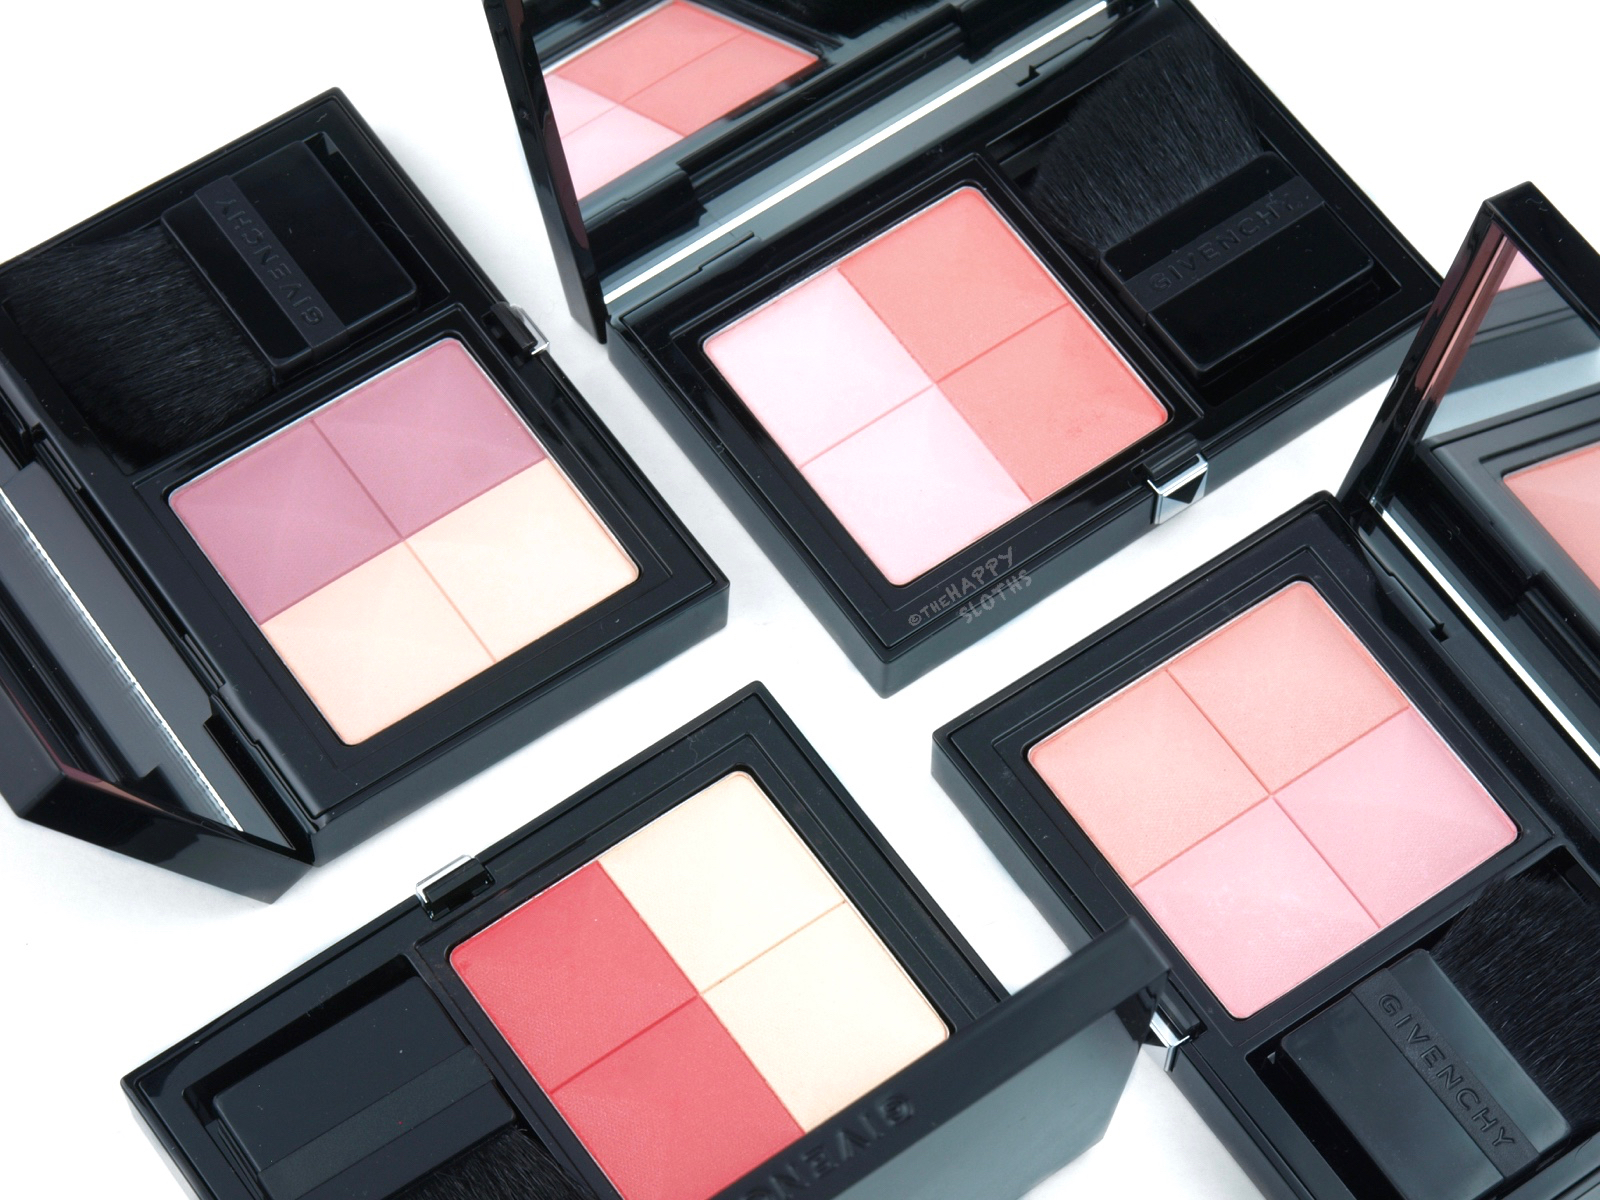 Givenchy Prisme Blush Highlight & Structure Powder Blush Duo: Review and Swatches